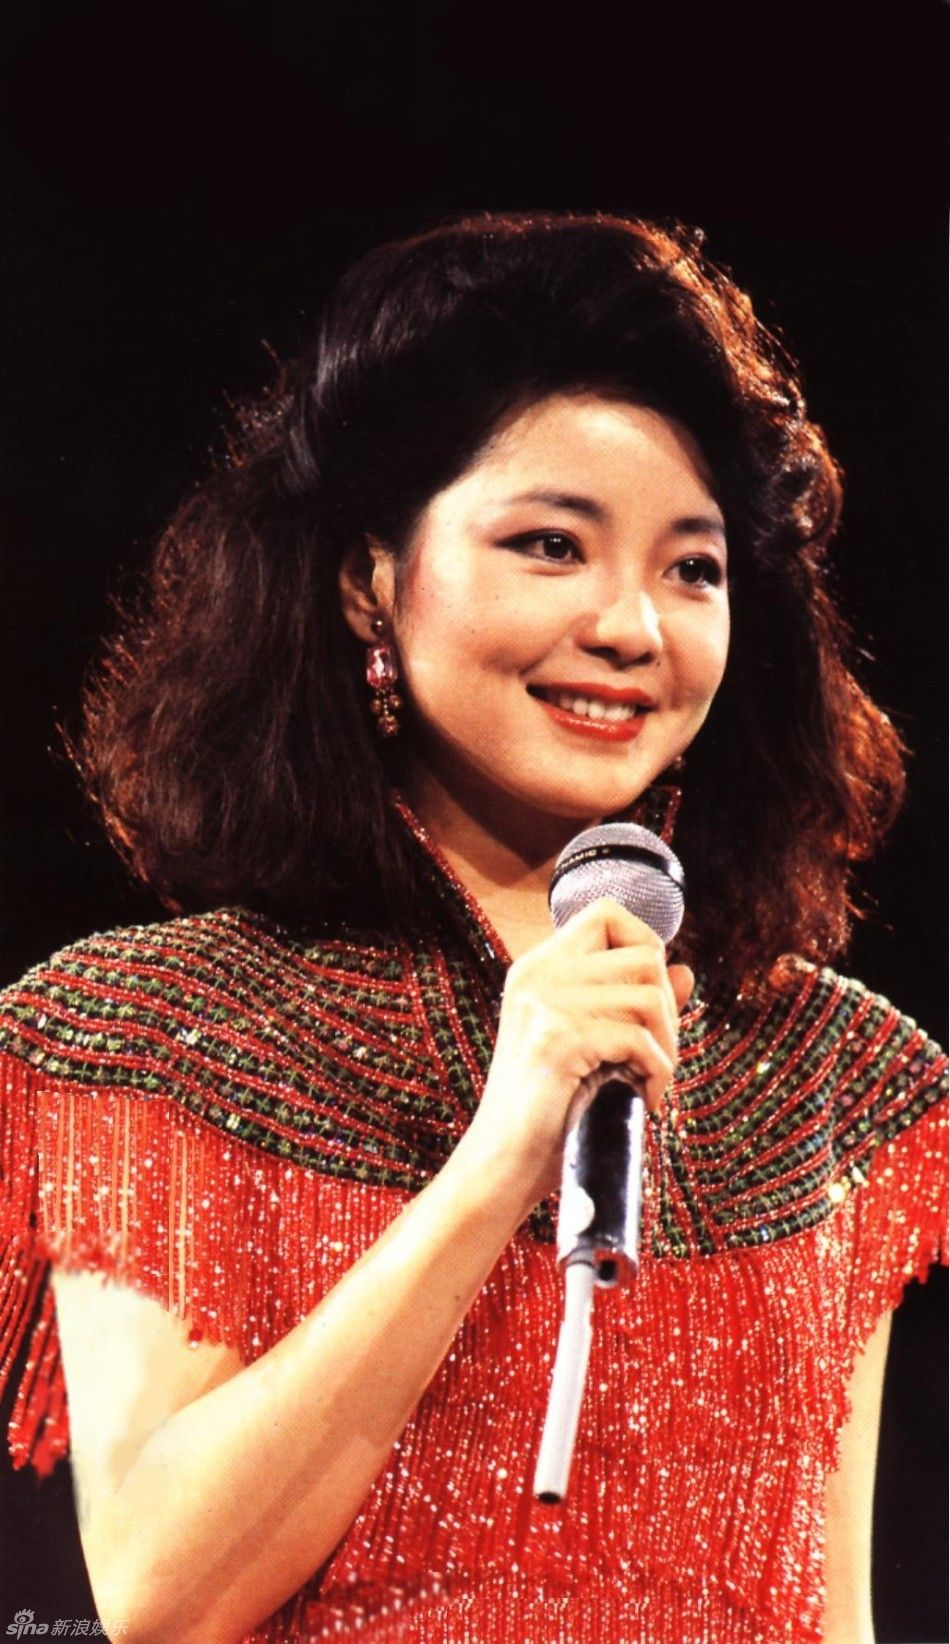 Discussion on this topic: Jill Hennessy born November 25, 1968 (age 49), teresa-teng/